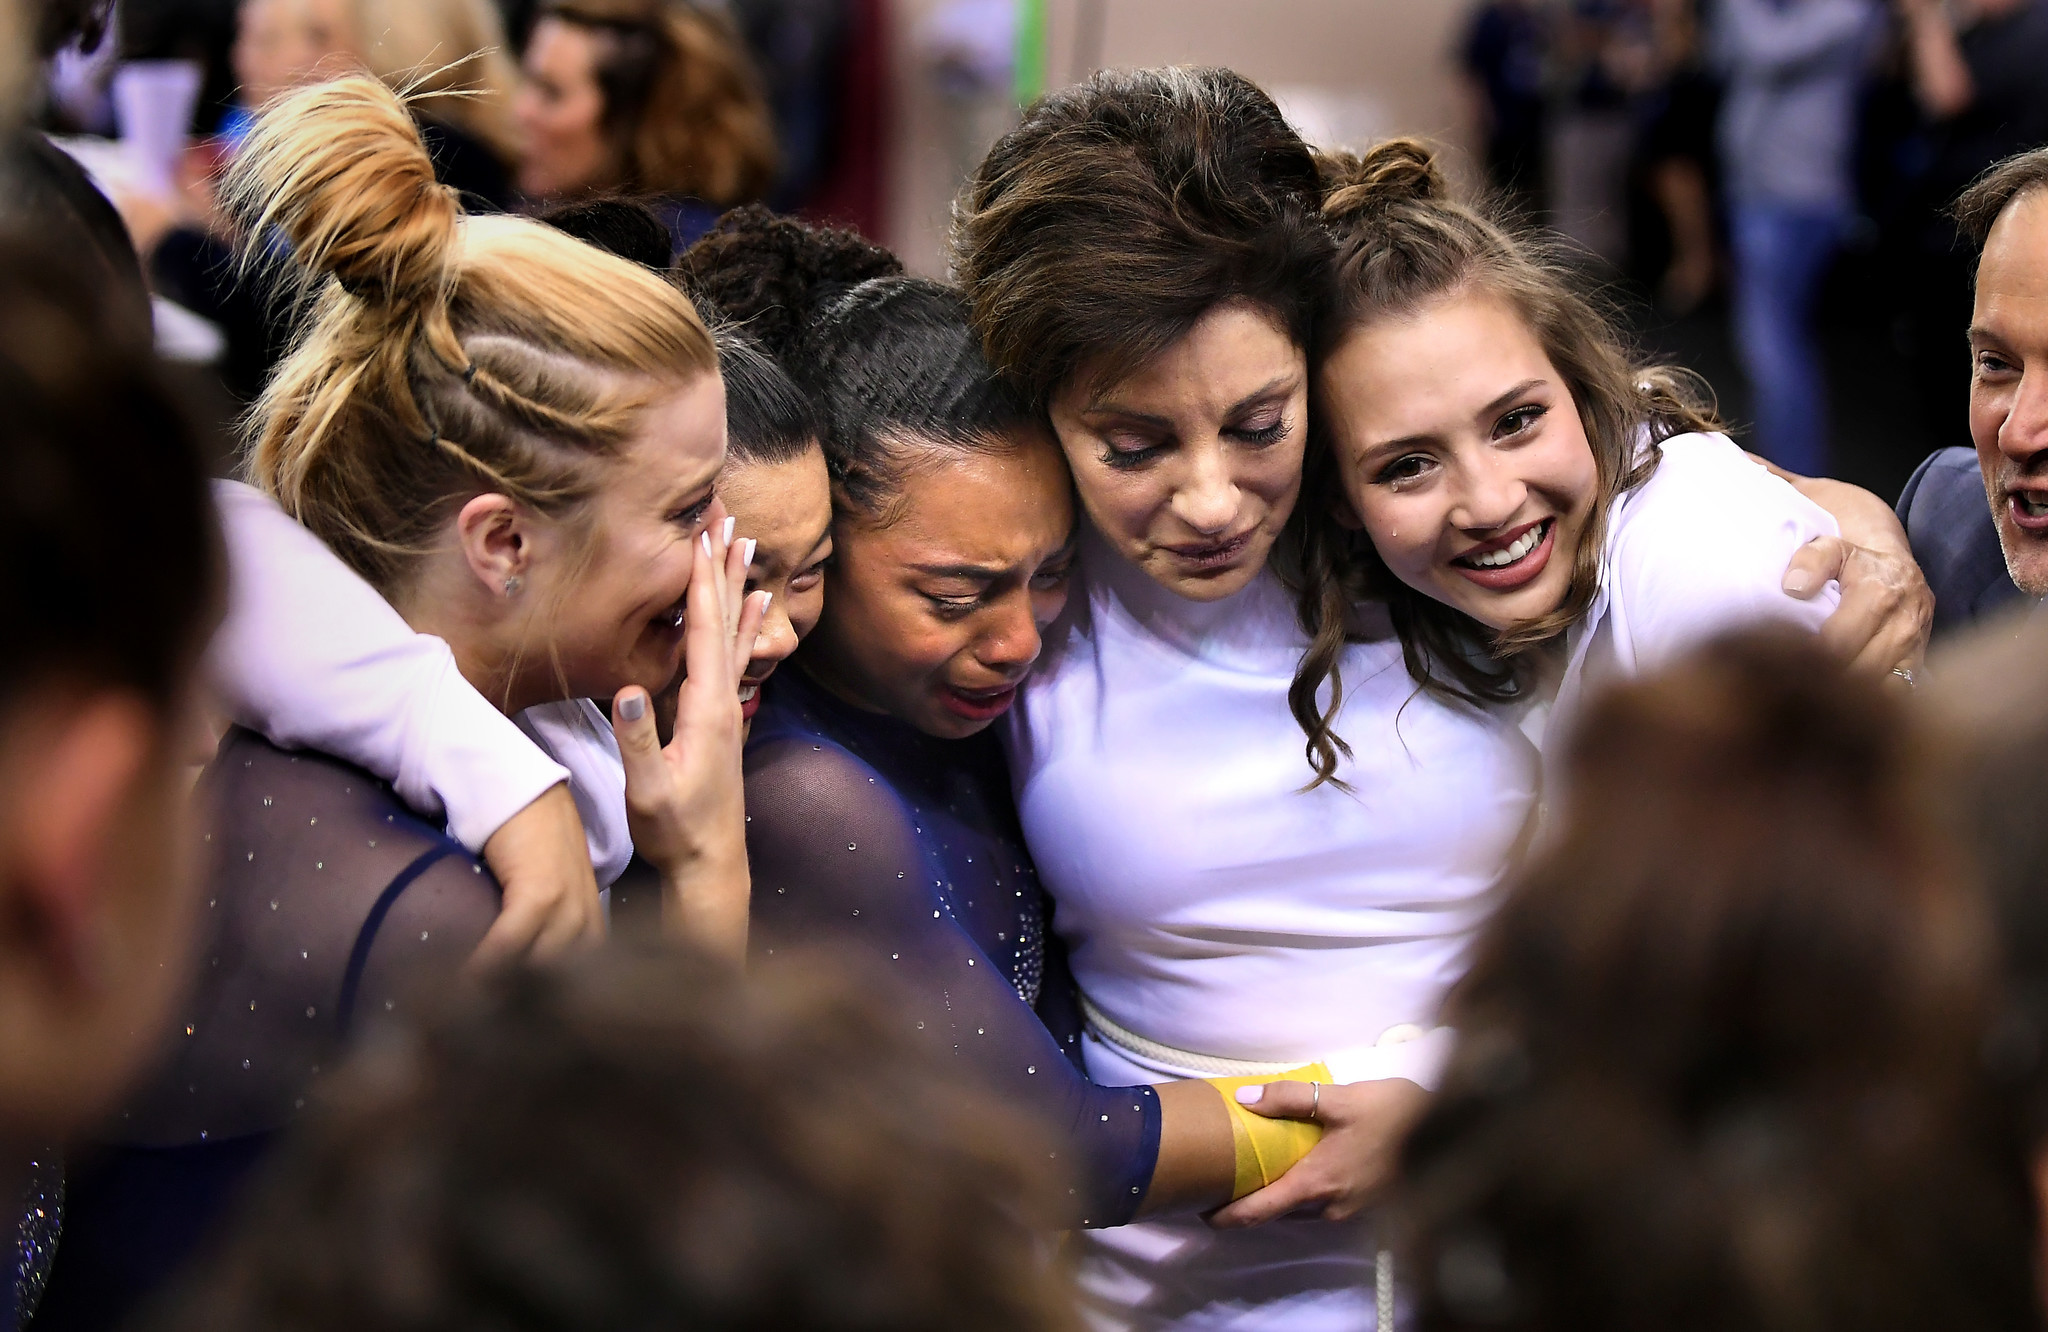 Coach Valorie Kondos Field, second from right, hugs her gymnasts from left, Gracie Kramer, Anna Glenn, Margzetta frazier and team manager Lila Waller.